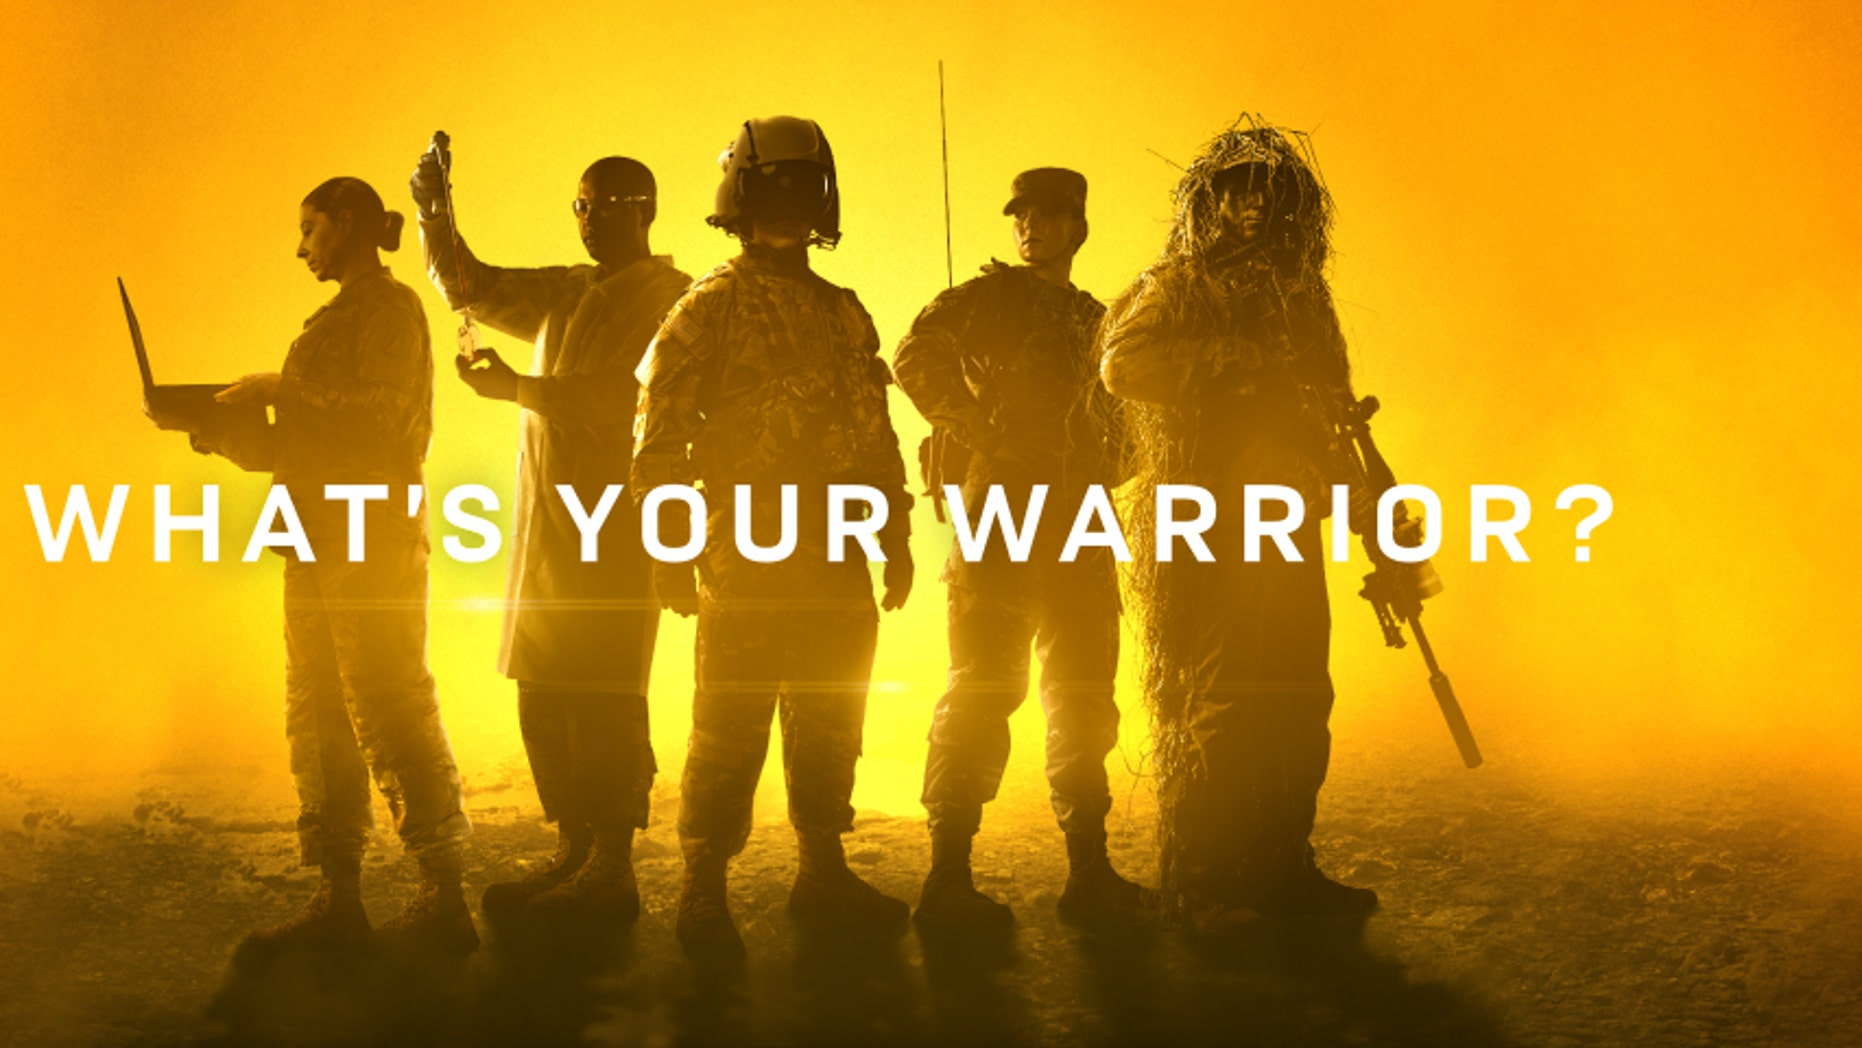 'What's Your Warrior' debate graphic.